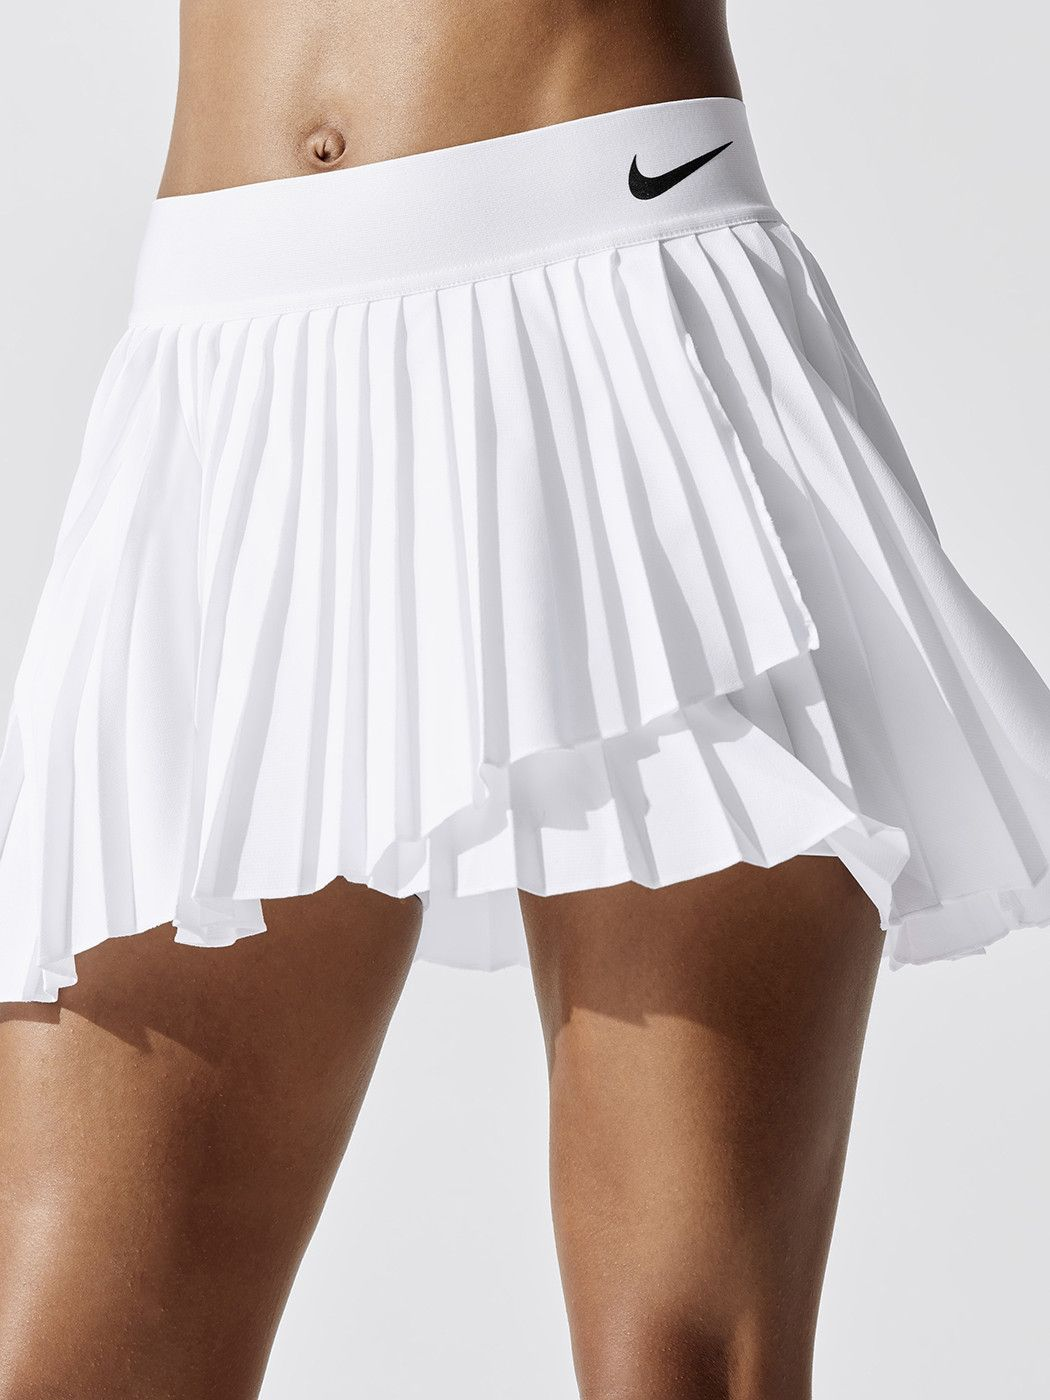 Nike Court Victory Tennis Skirt In 2020 Tennis Outfit Women White Tennis Skirt Tennis Skirt Outfit